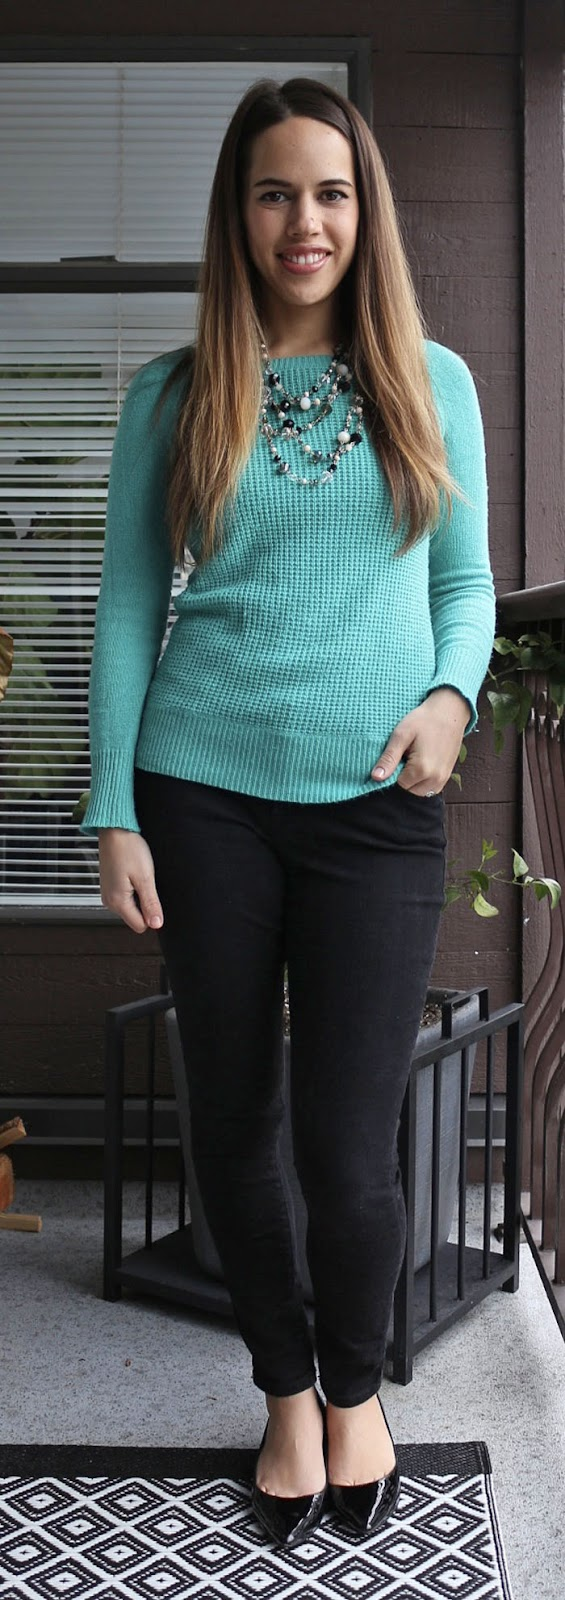 Jules in Flats - J.Crew Sweater, Old Navy Pixie Pants, Aldo Deloris shoes